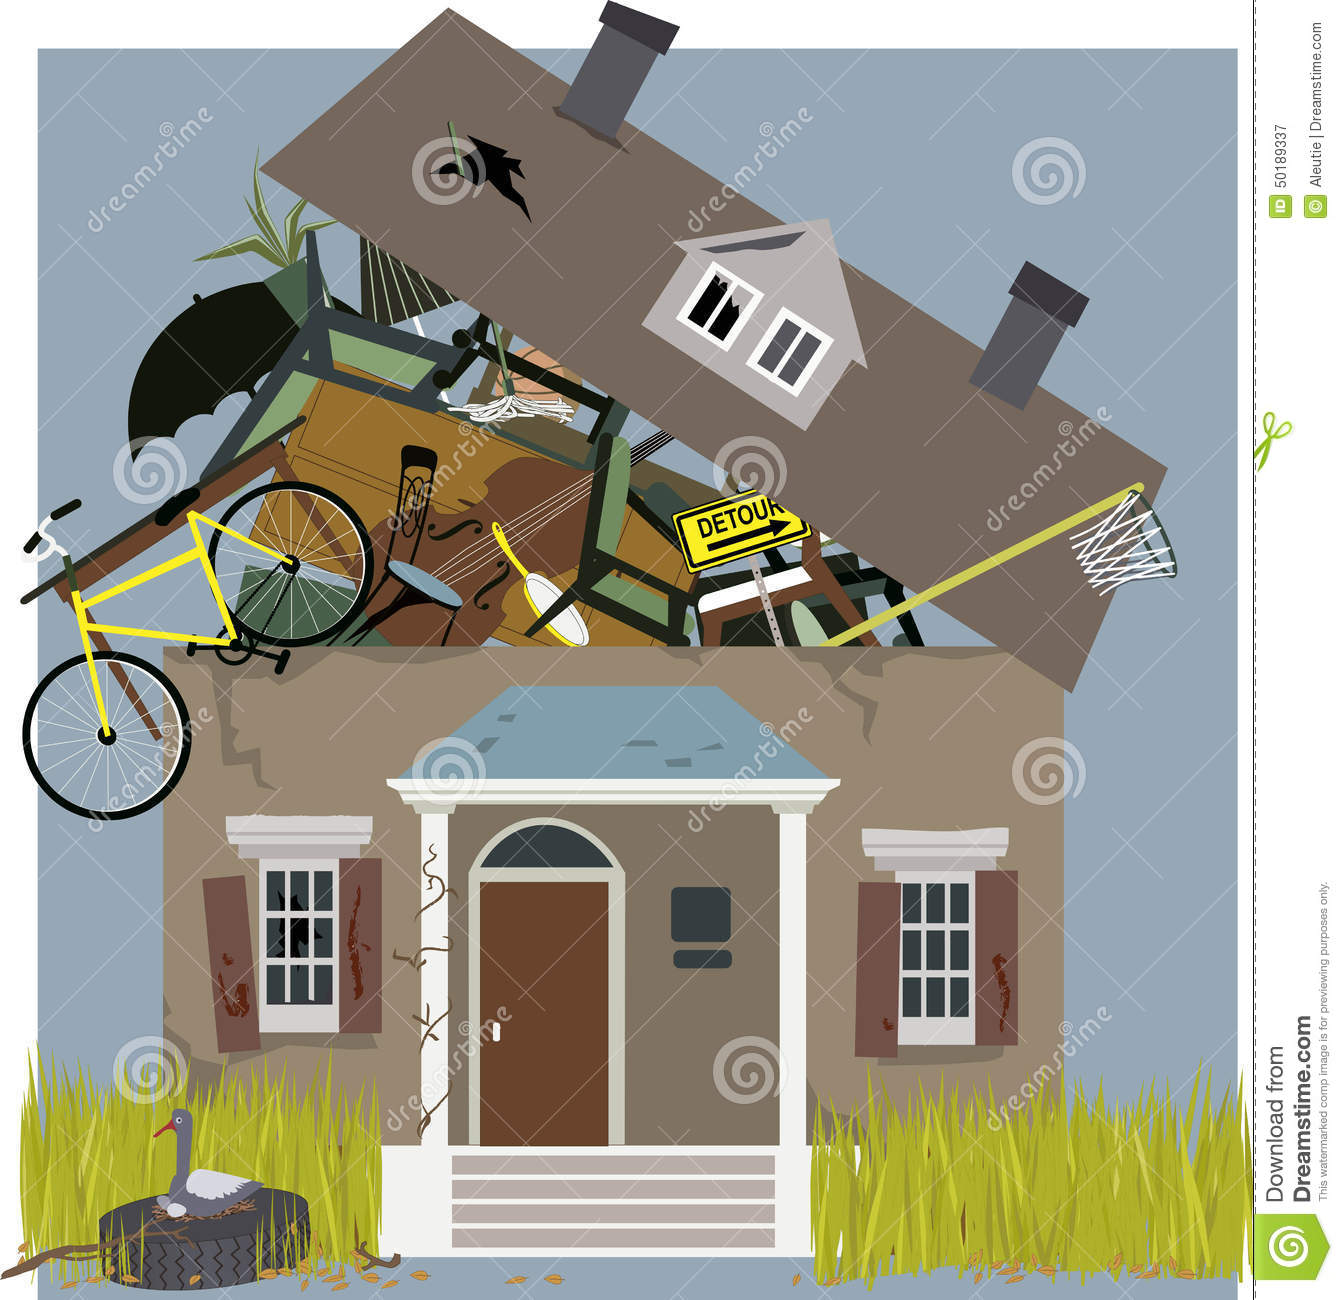 Messy Room Garbage: Hoarder House Stock Vector